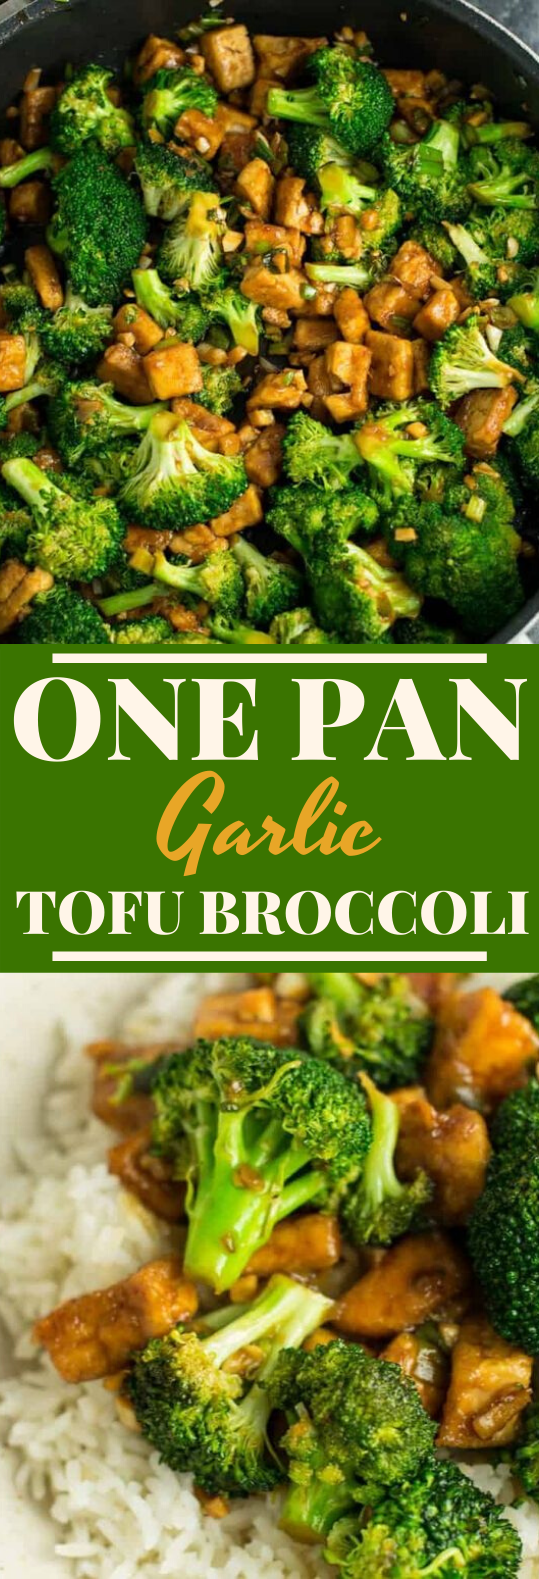 BROCCOLI TOFU STIR FRY #vegan #dinner #recipes #chinese #tofu